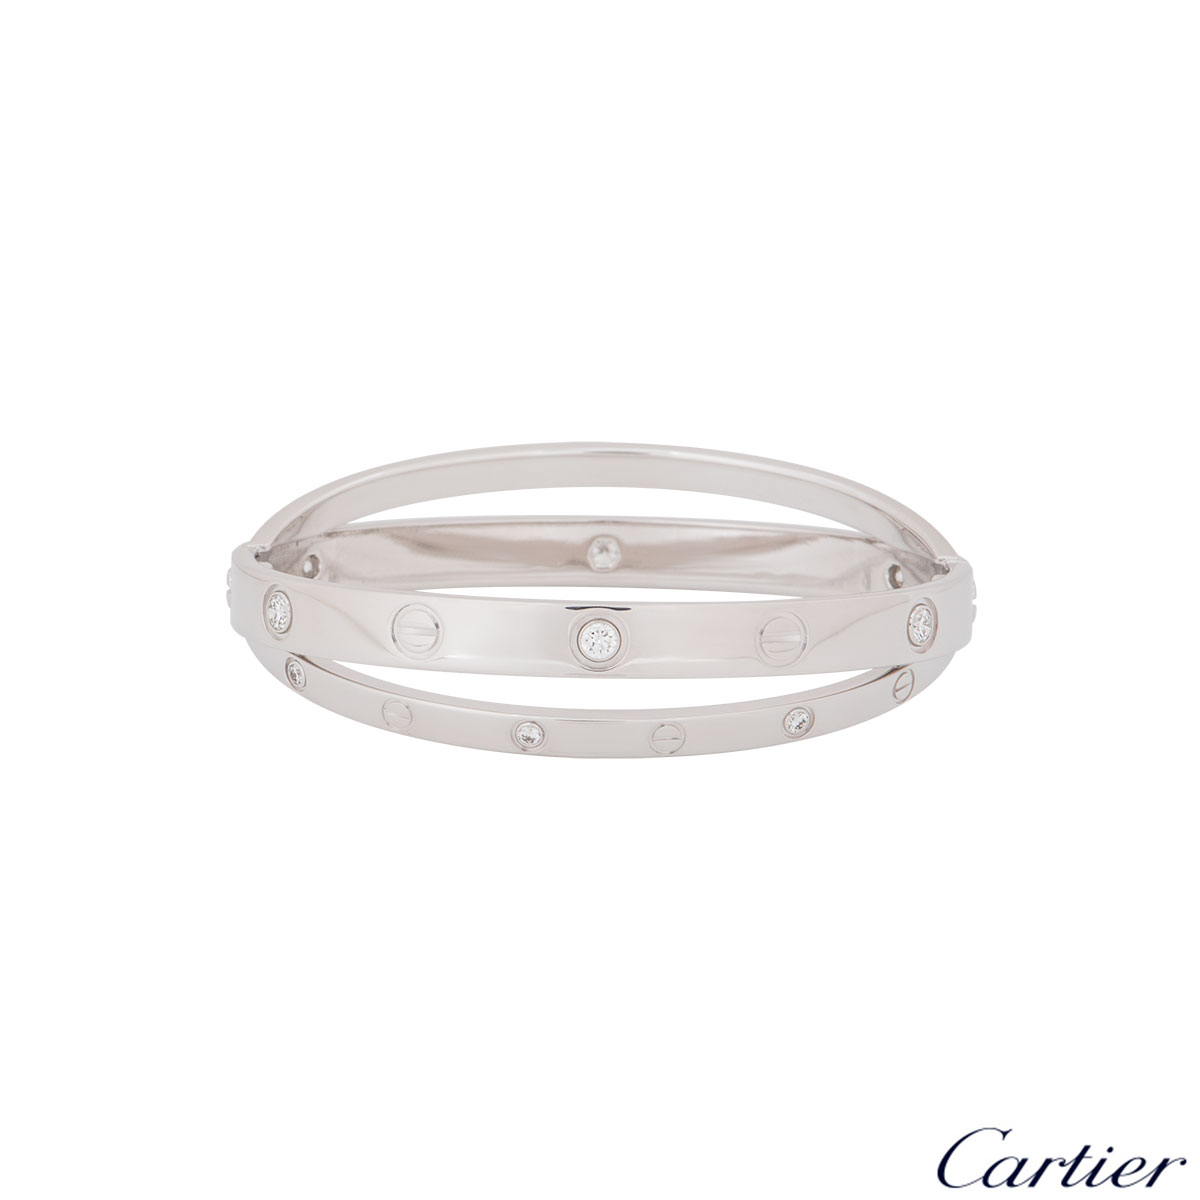 Cartier White Gold Half Diamond Love Bracelet Size 16 N6709516